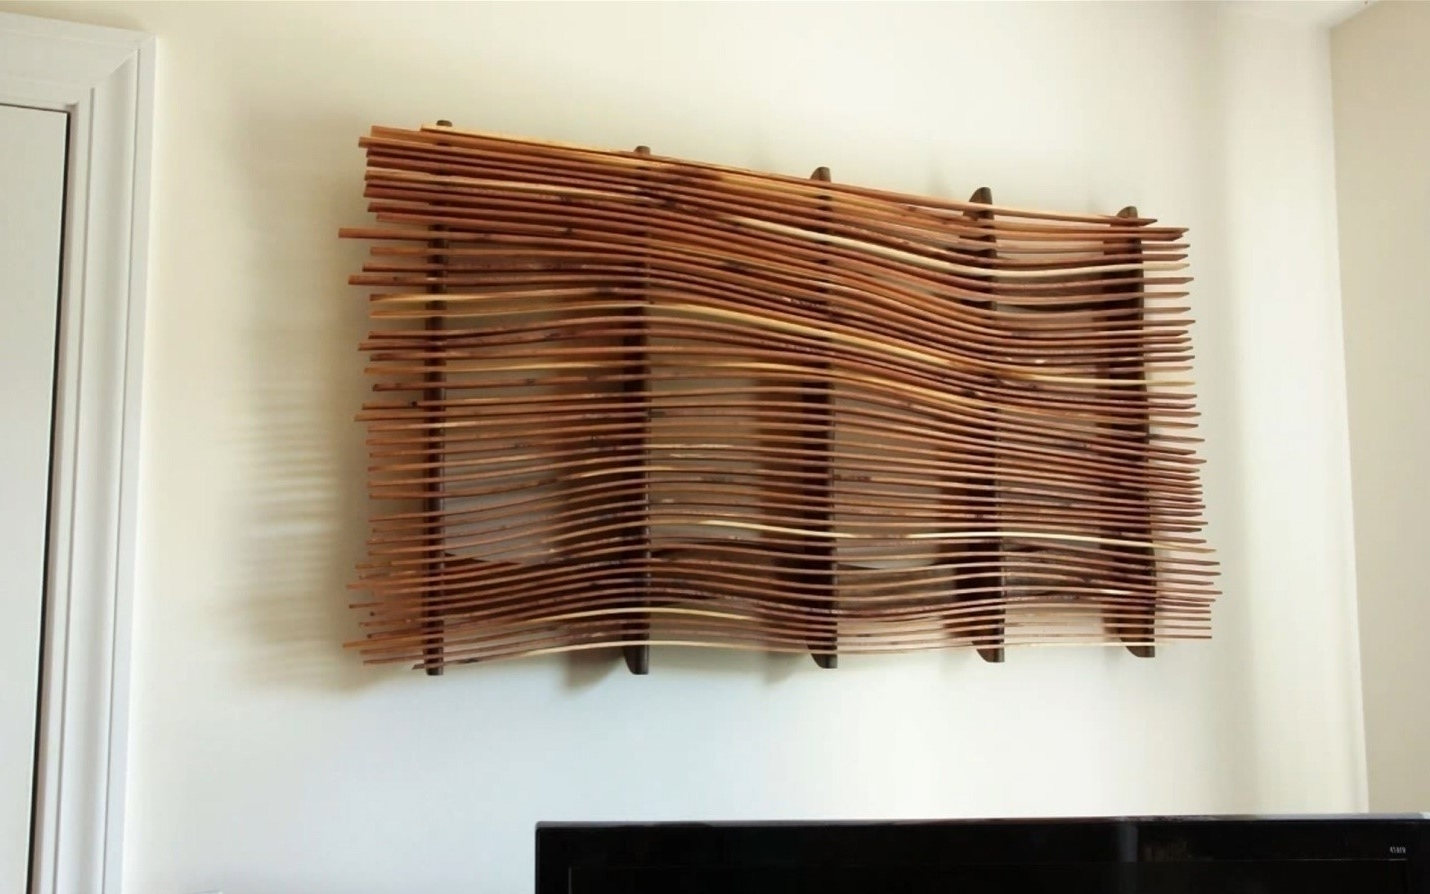 Current Diy Wall Art Projects Pertaining To How To Make Wall Art From Scrap Wood (View 4 of 20)